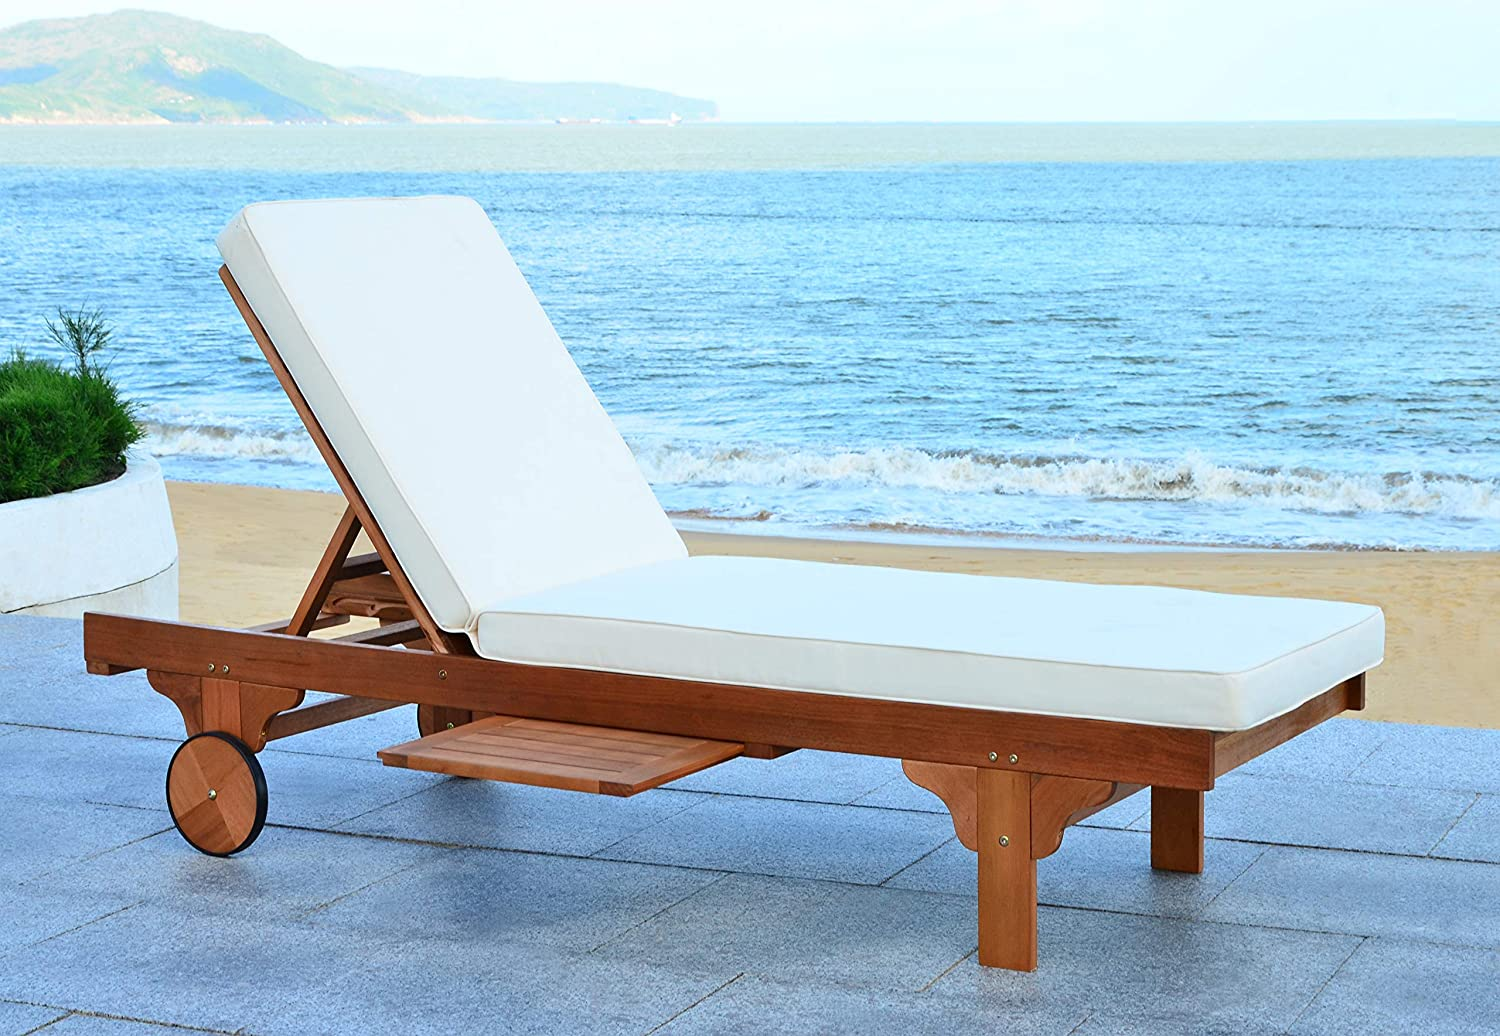 Safavieh Newport Chaise Lounge Chair - For Big & Heavy People on Safavieh Chaise Lounge id=66729